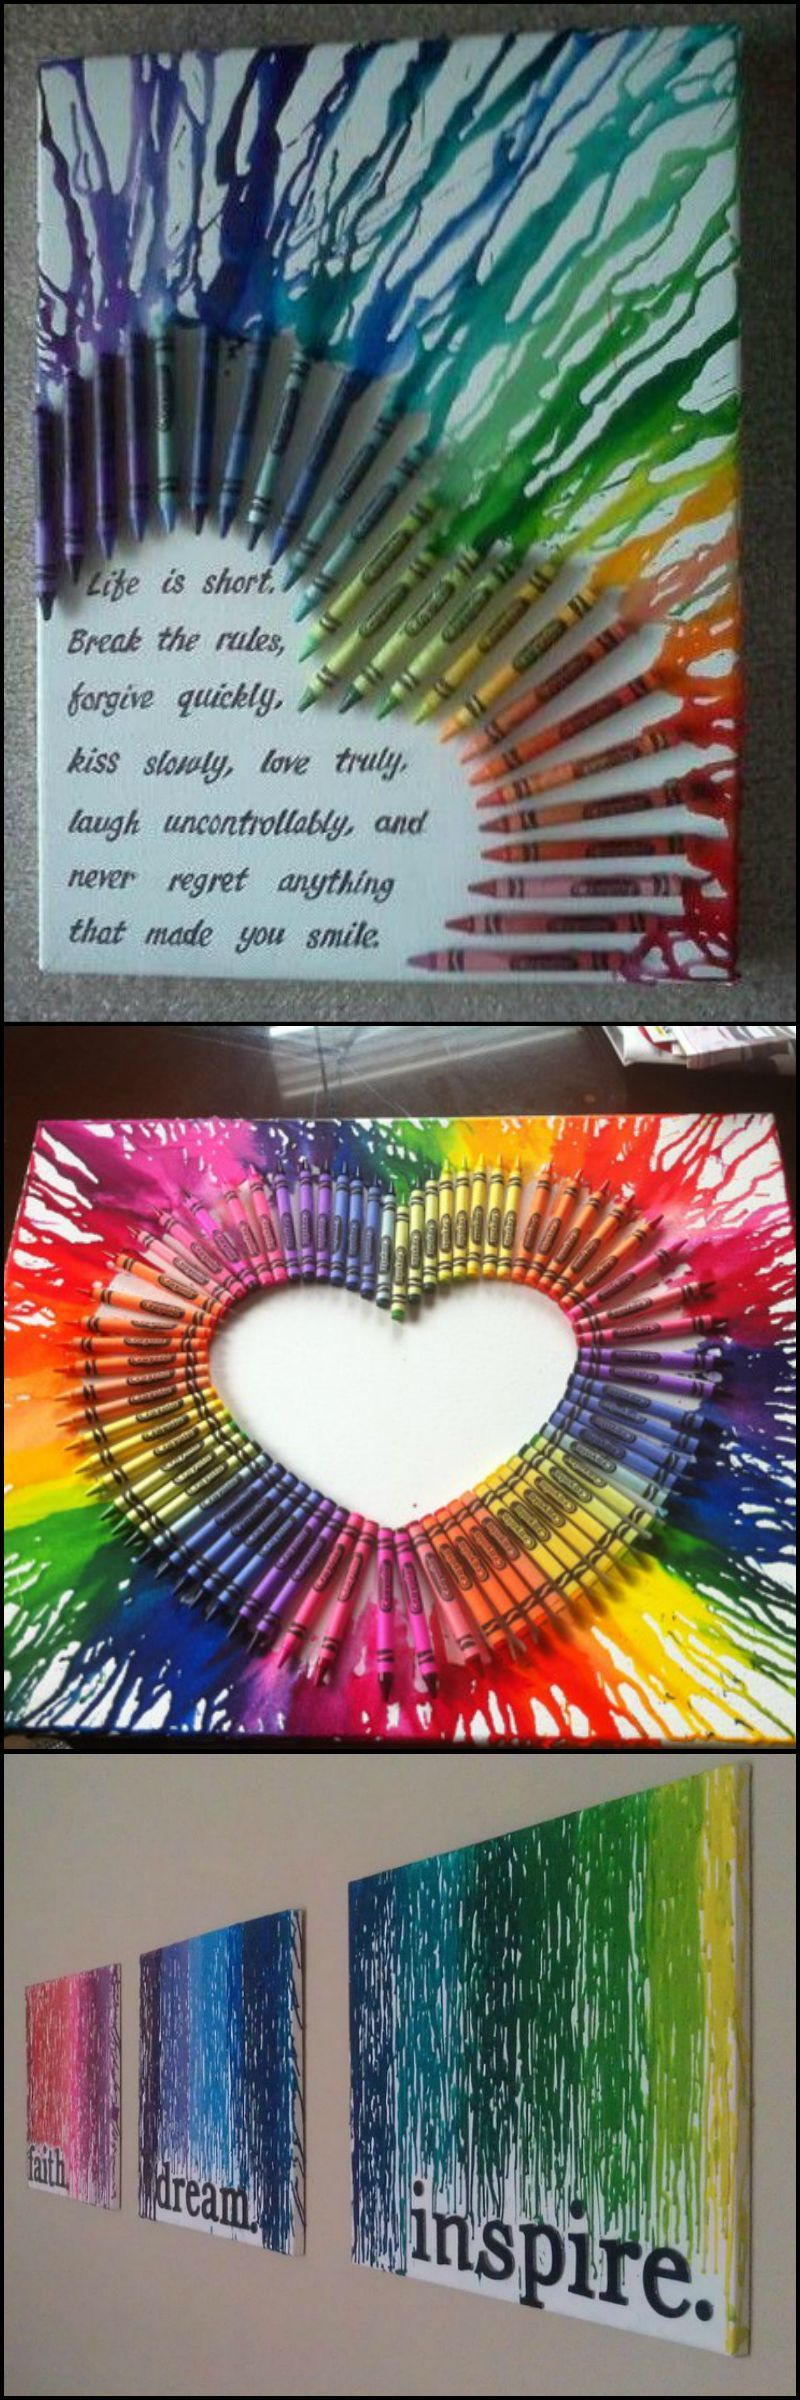 Pin by Barb Caudle on Hot glue art Pinterest Crafts DIY and Art